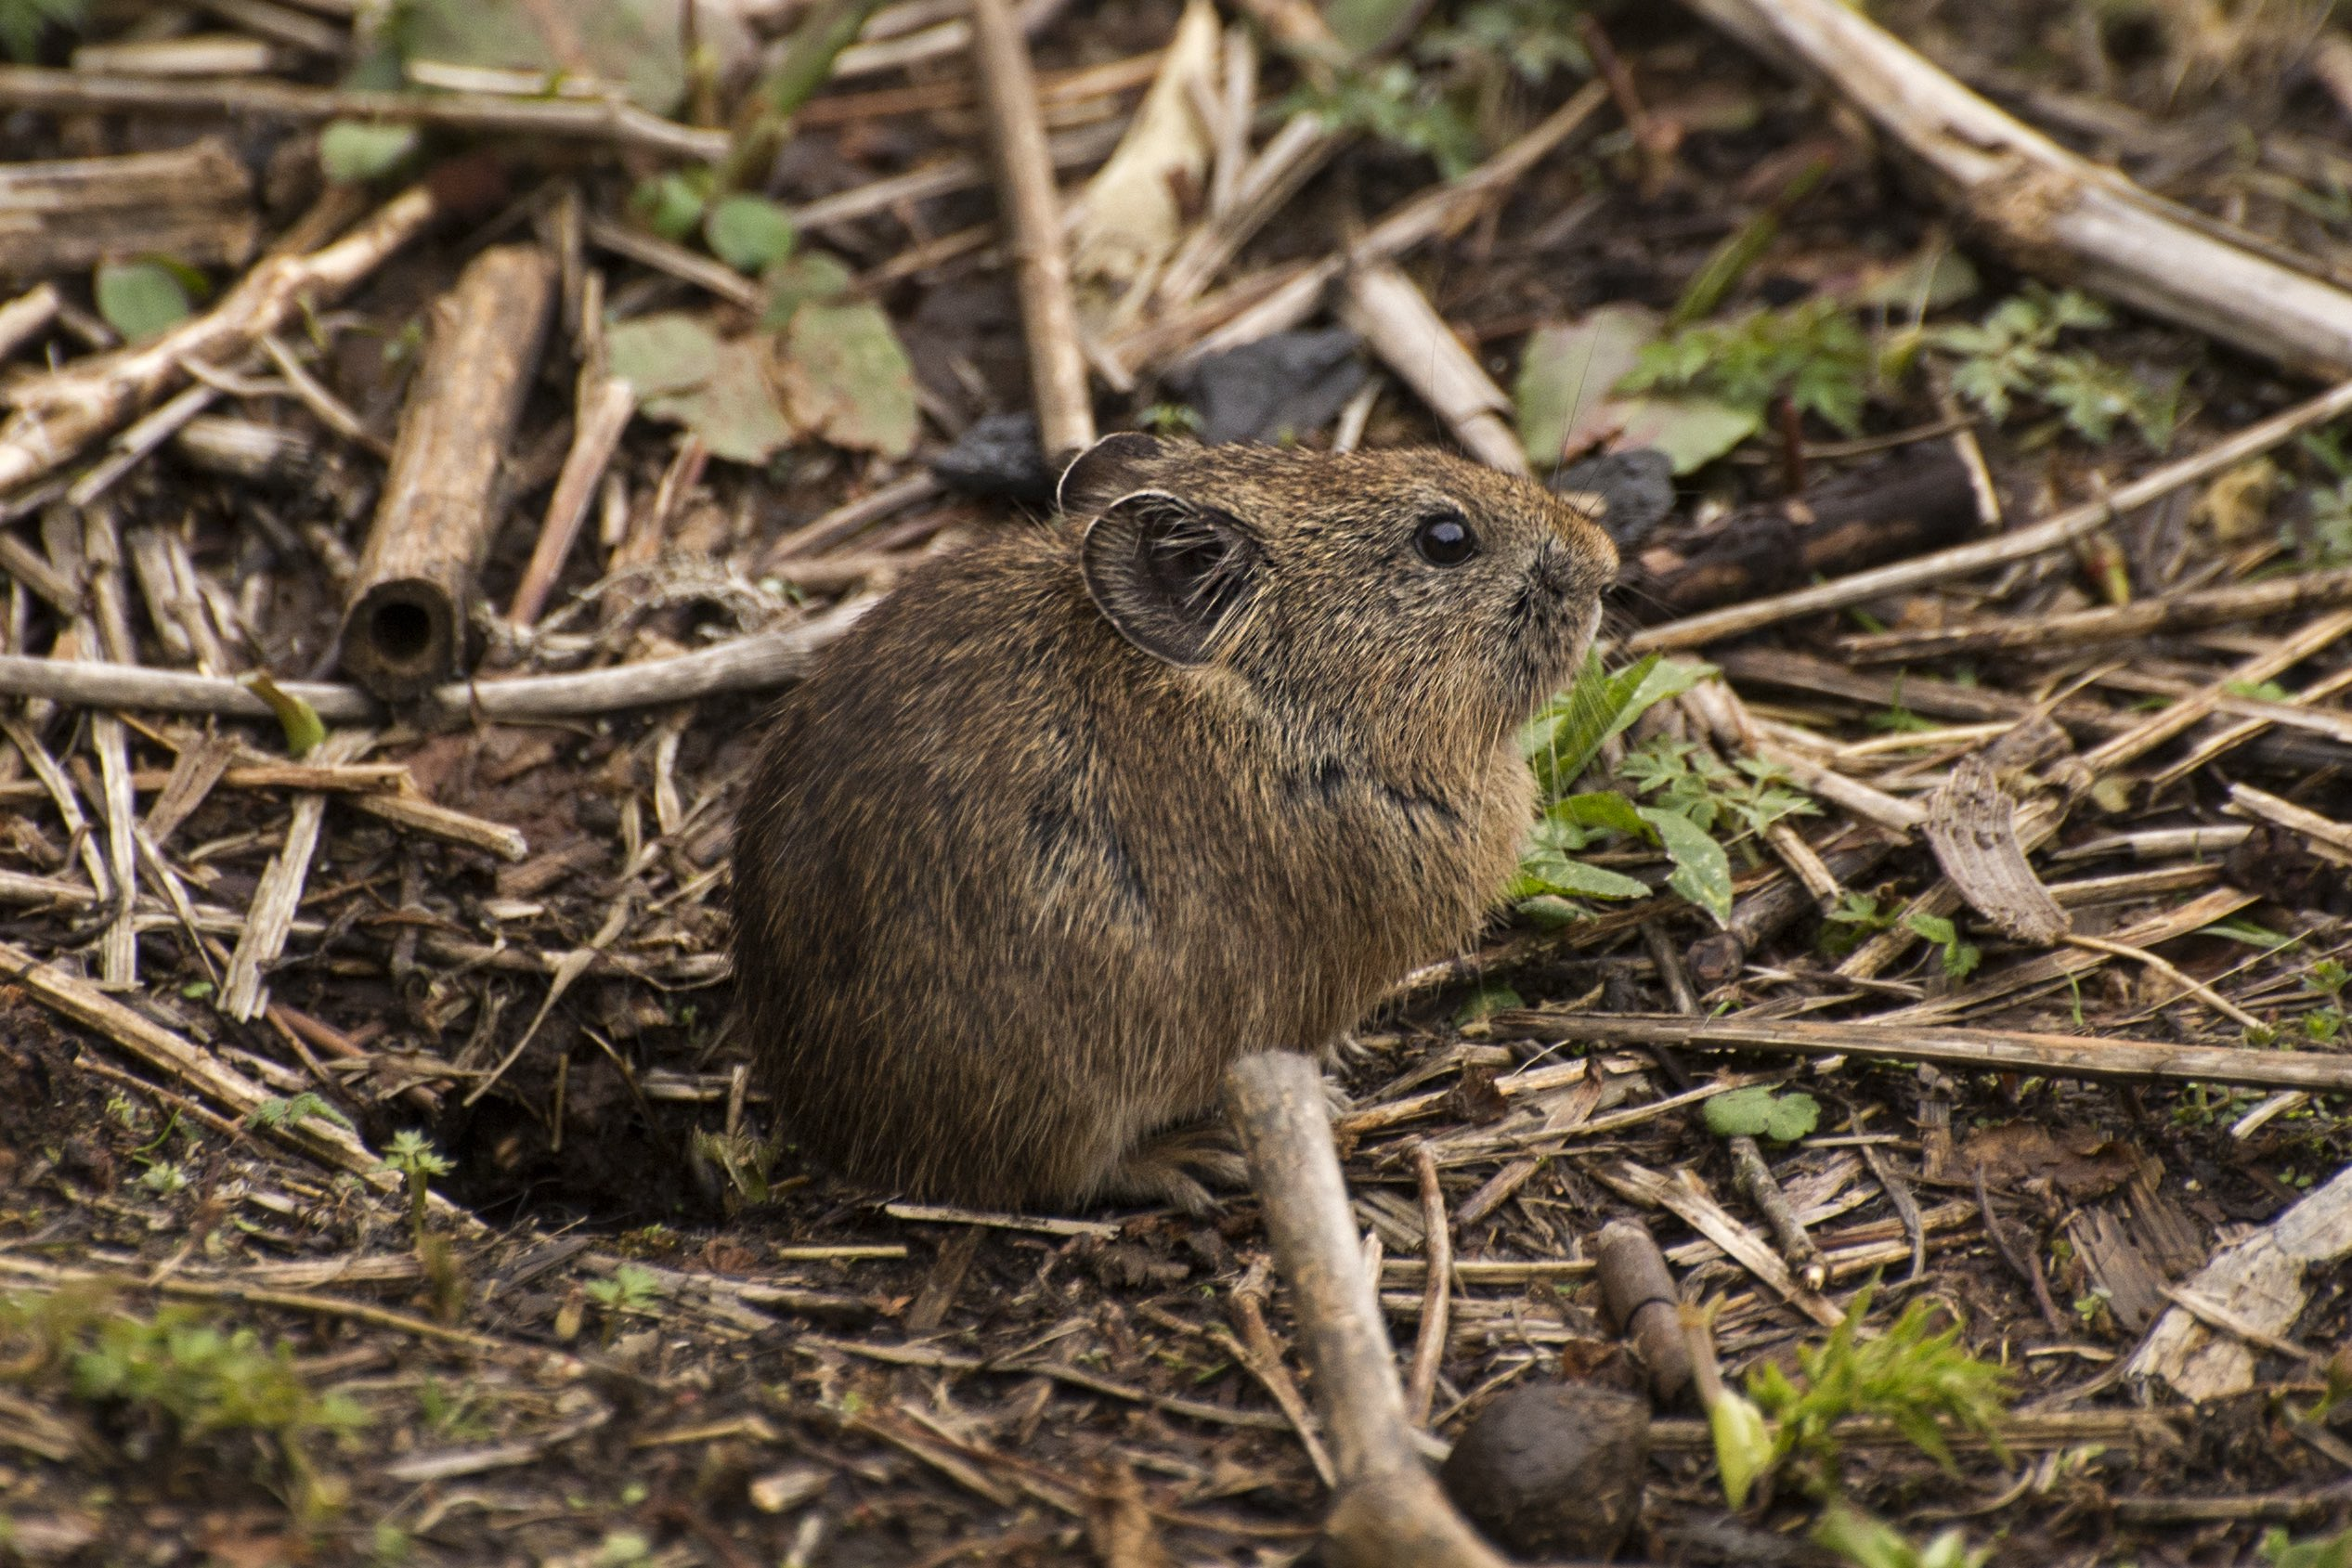 The new species — named Sikkim pika or Ochotona sikimeria — was previously classified as a sub-species of the Moupin pika or Ochotona thibetana. Photo by Prasenjeet Yadav